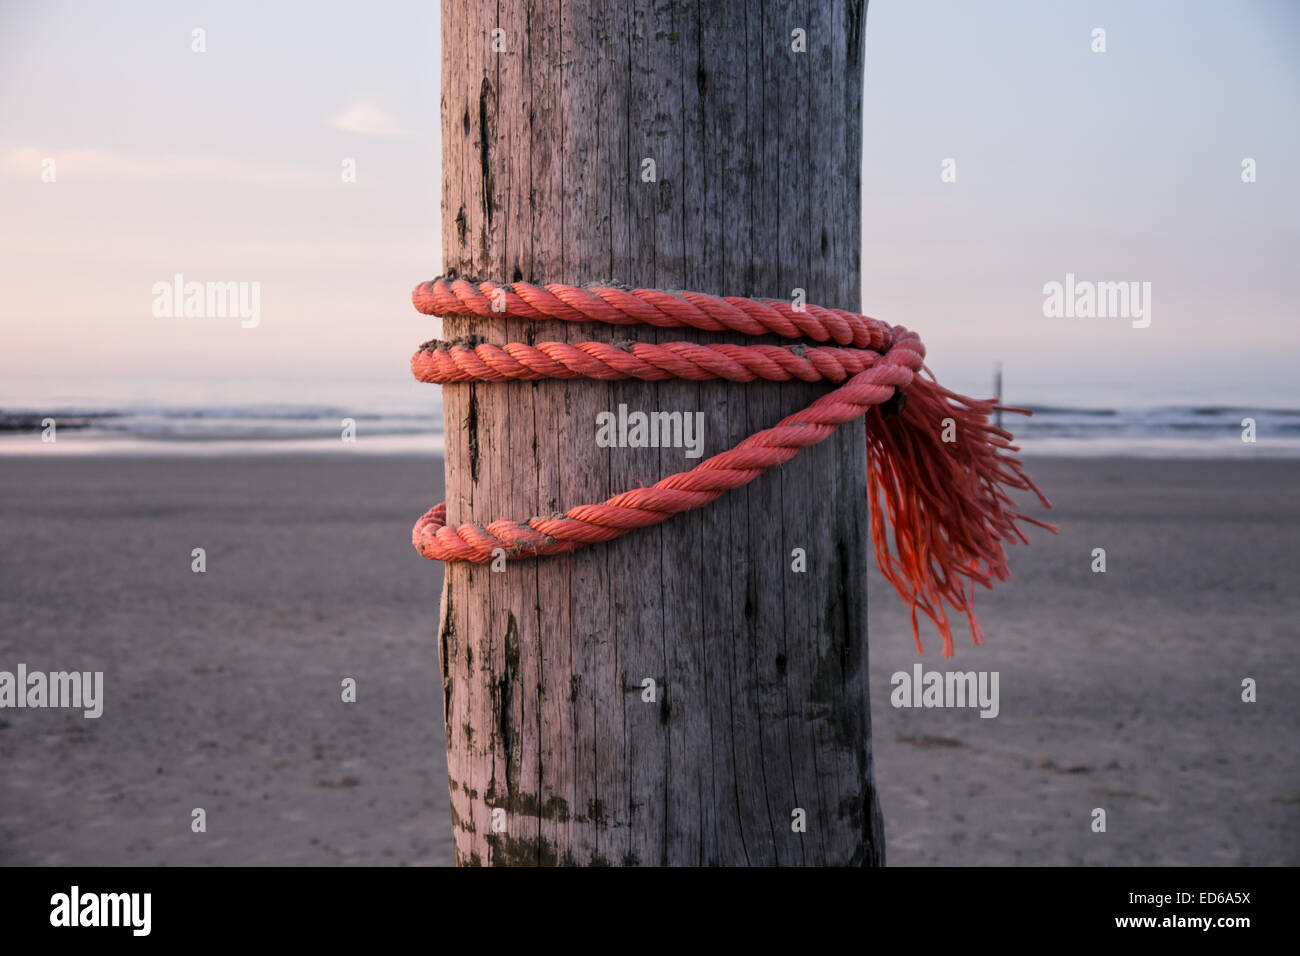 strong red rope on wooden stake Stock Photo